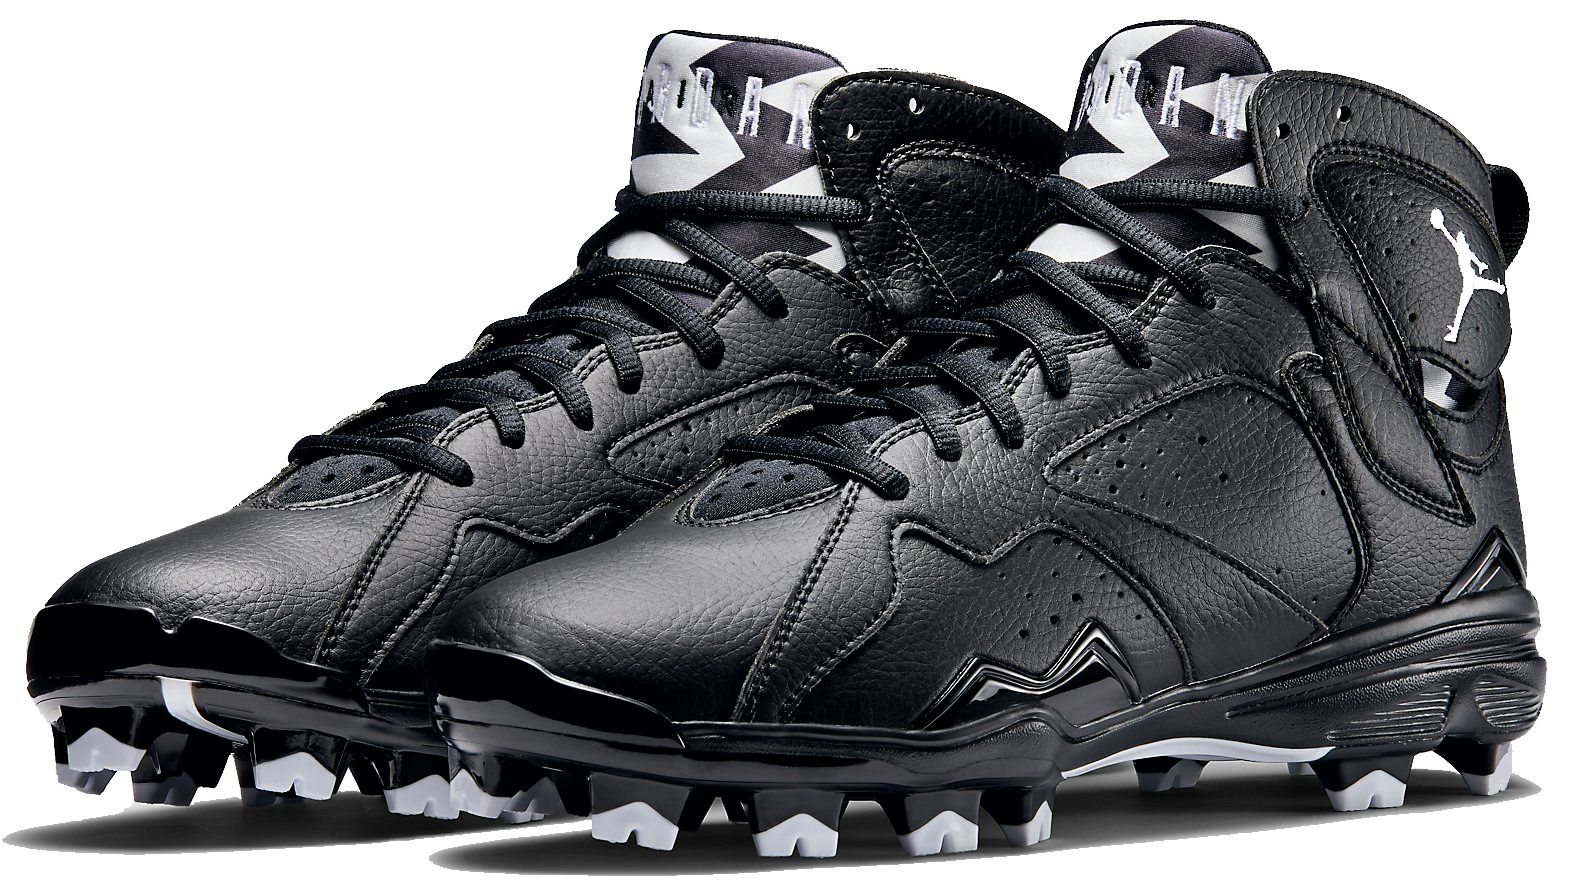 Nike Air Jordan Retro 7 MCS Adult Baseball Cleat